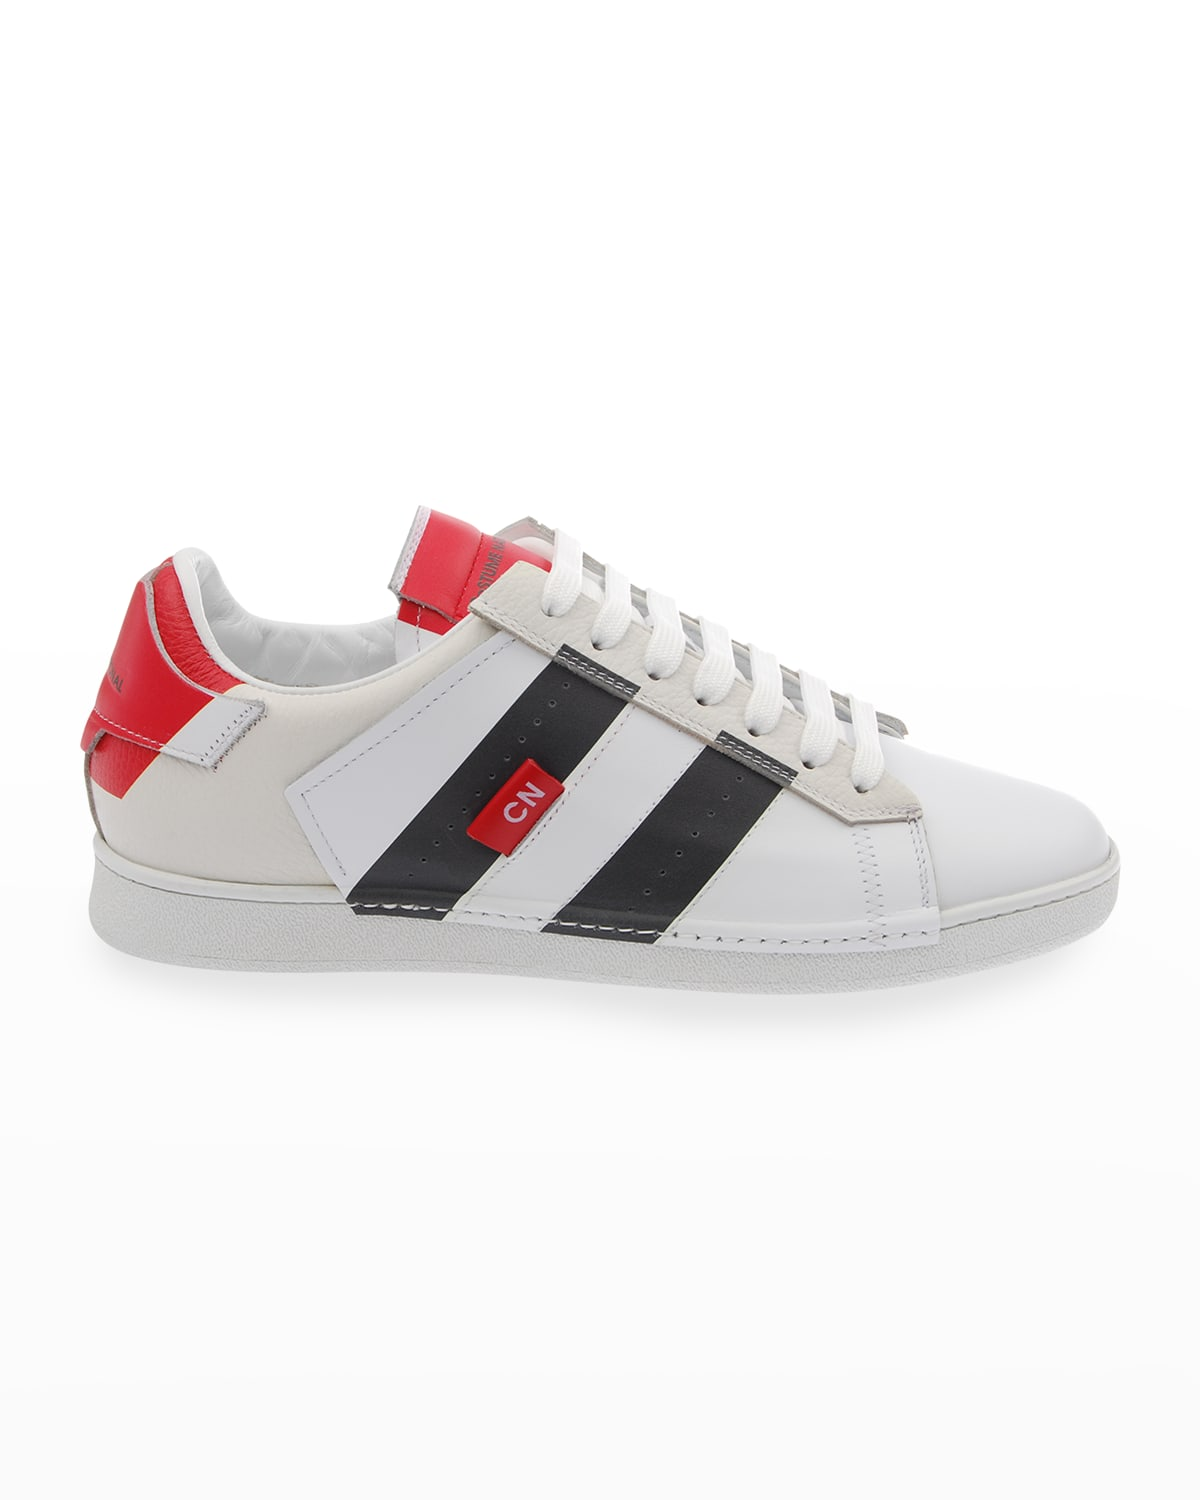 Men's Striped Leather Low-Top Sneakers